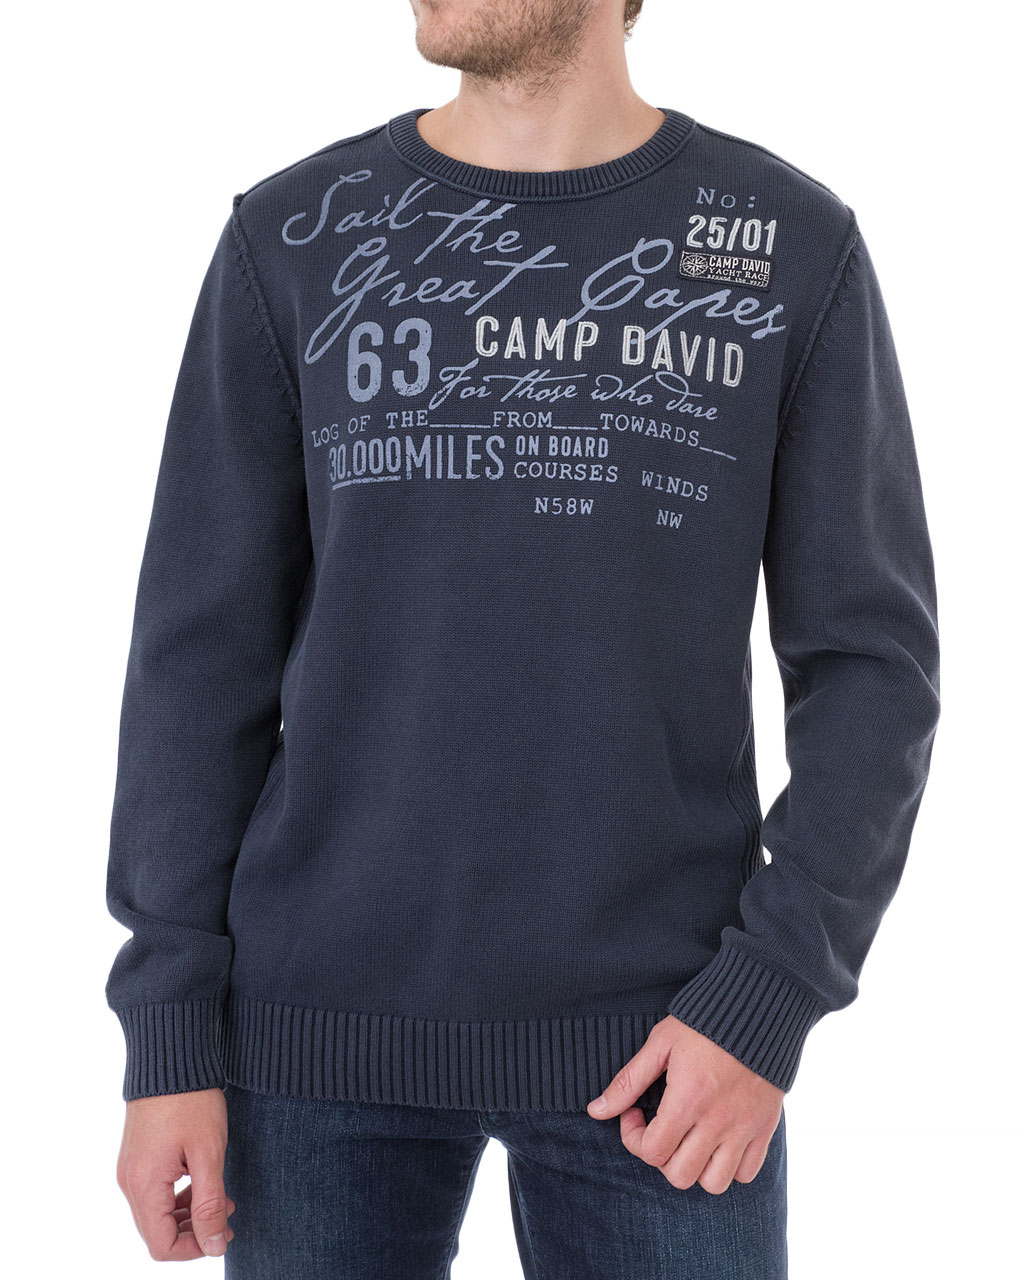 Men's jumper 1809-4770/8-92-синий (1)